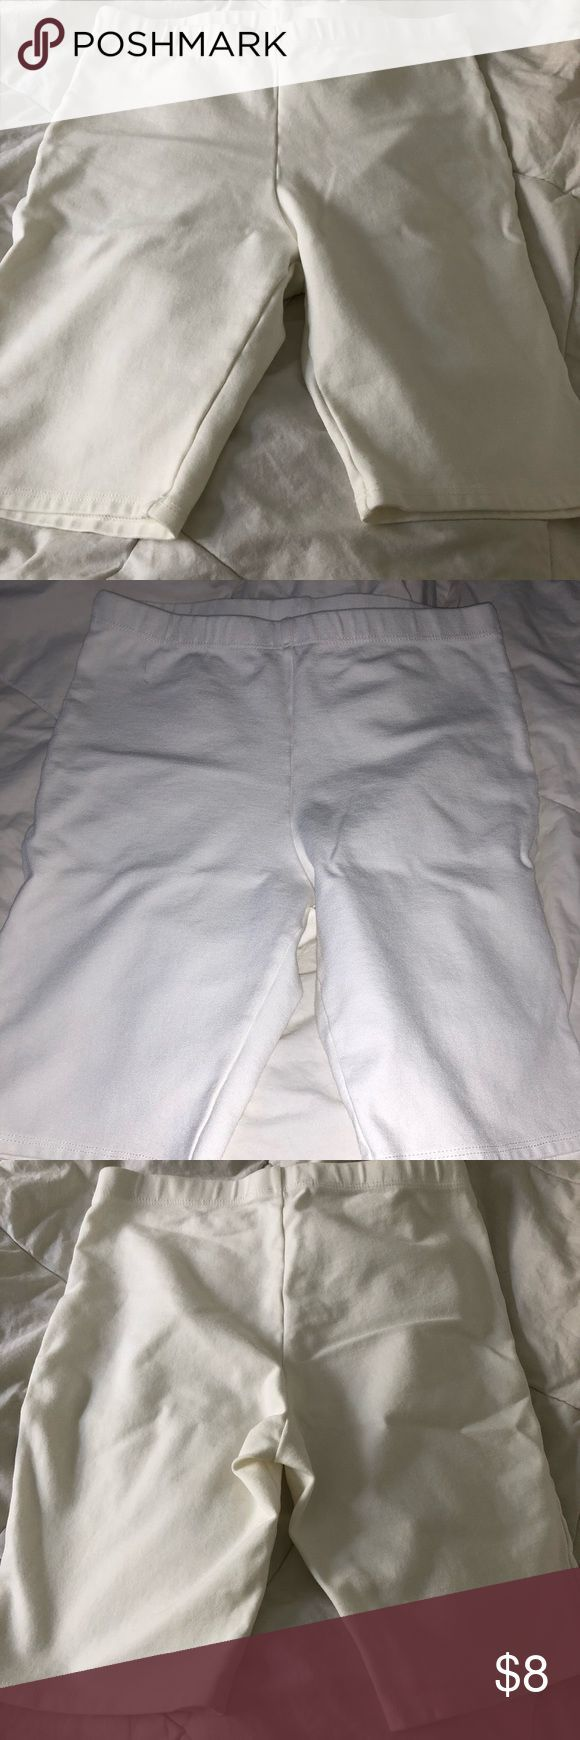 FOREVER 21 White Biker Shorts These are biker shorts that are super thick and no   – Biker shorts